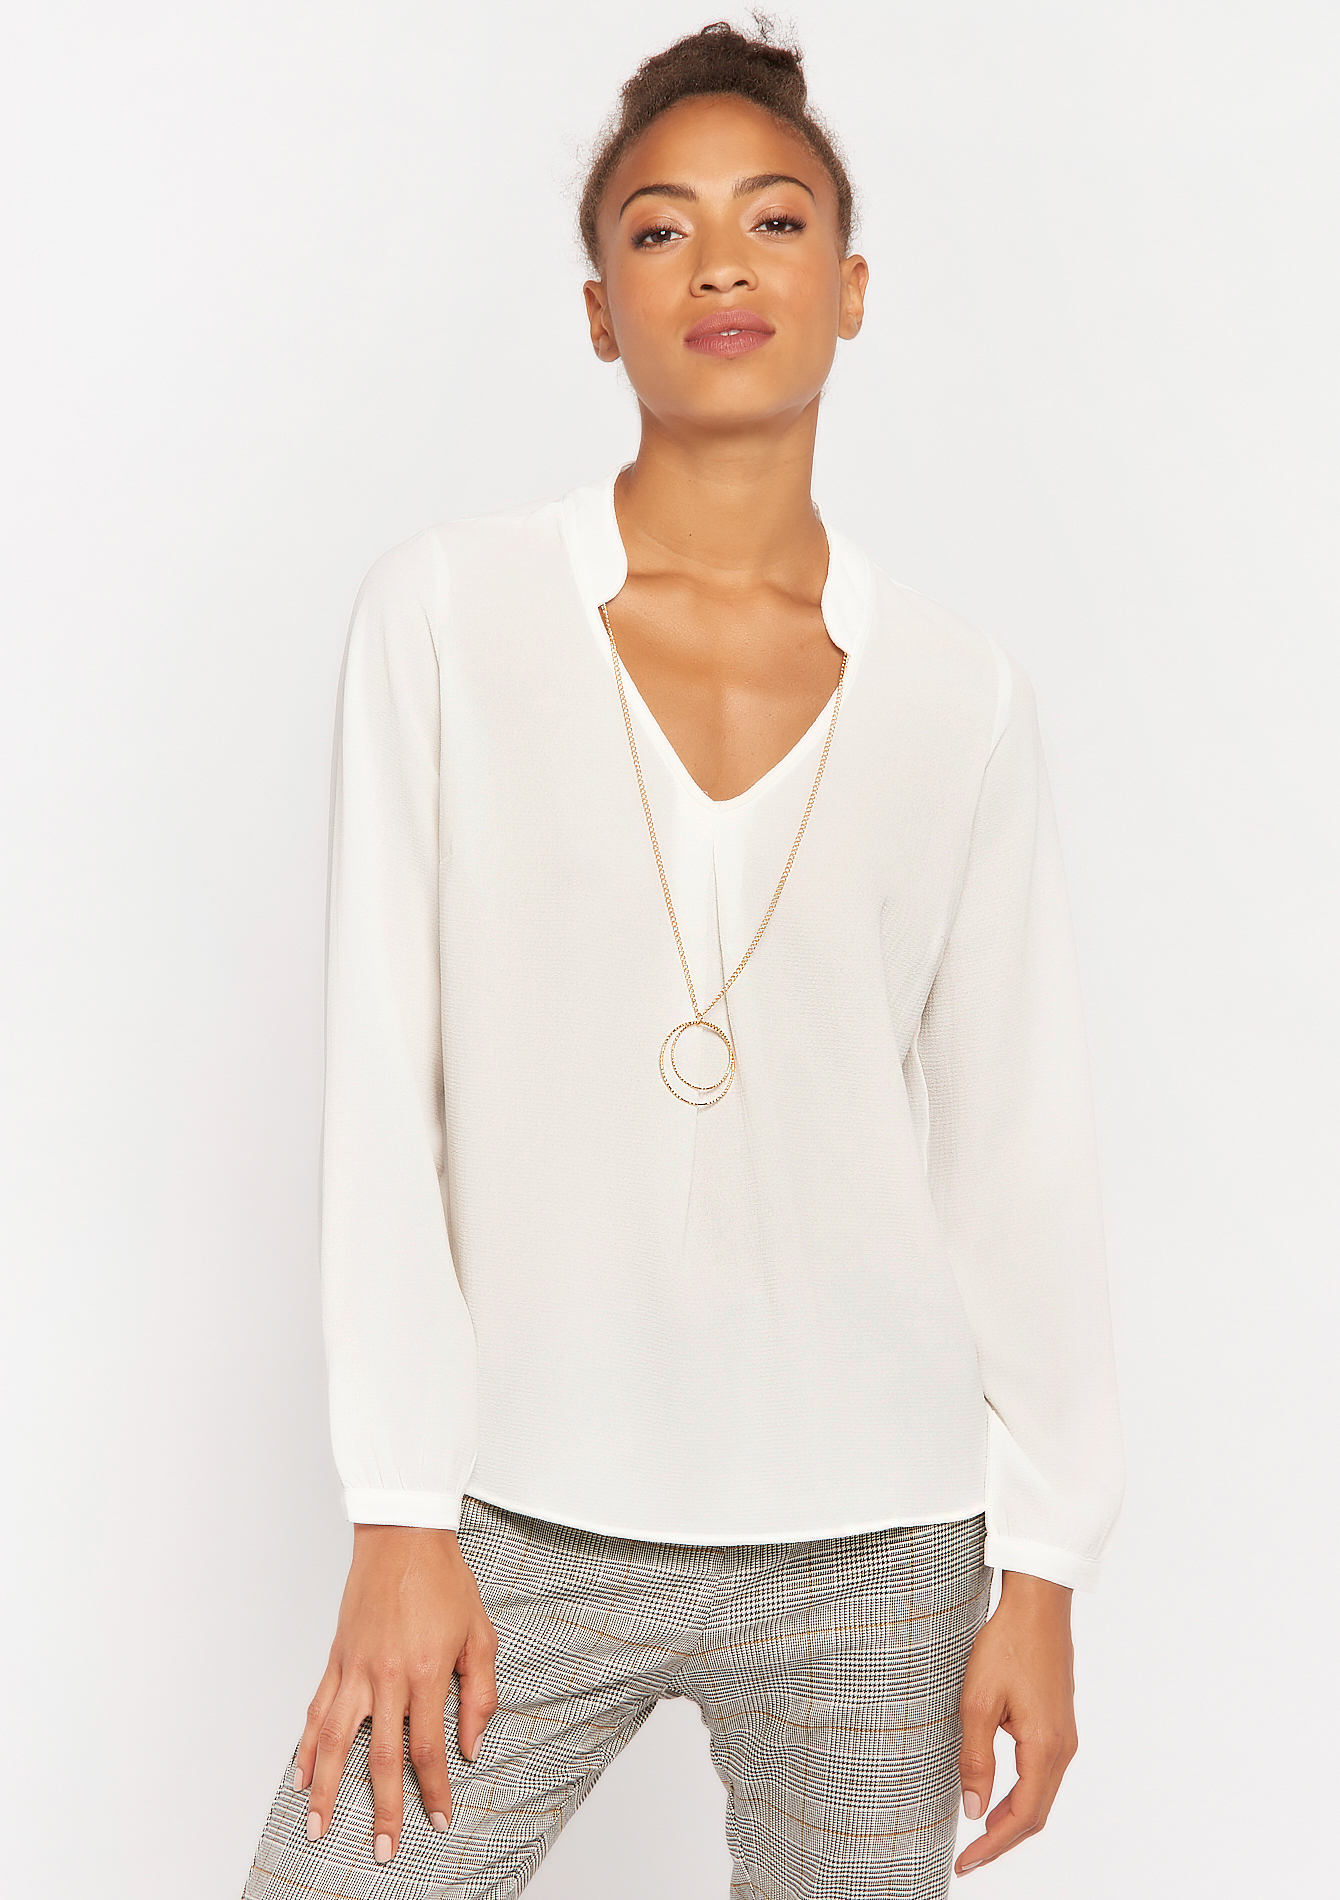 Blouse with necklace - OFFWHITE - 05700404_1001